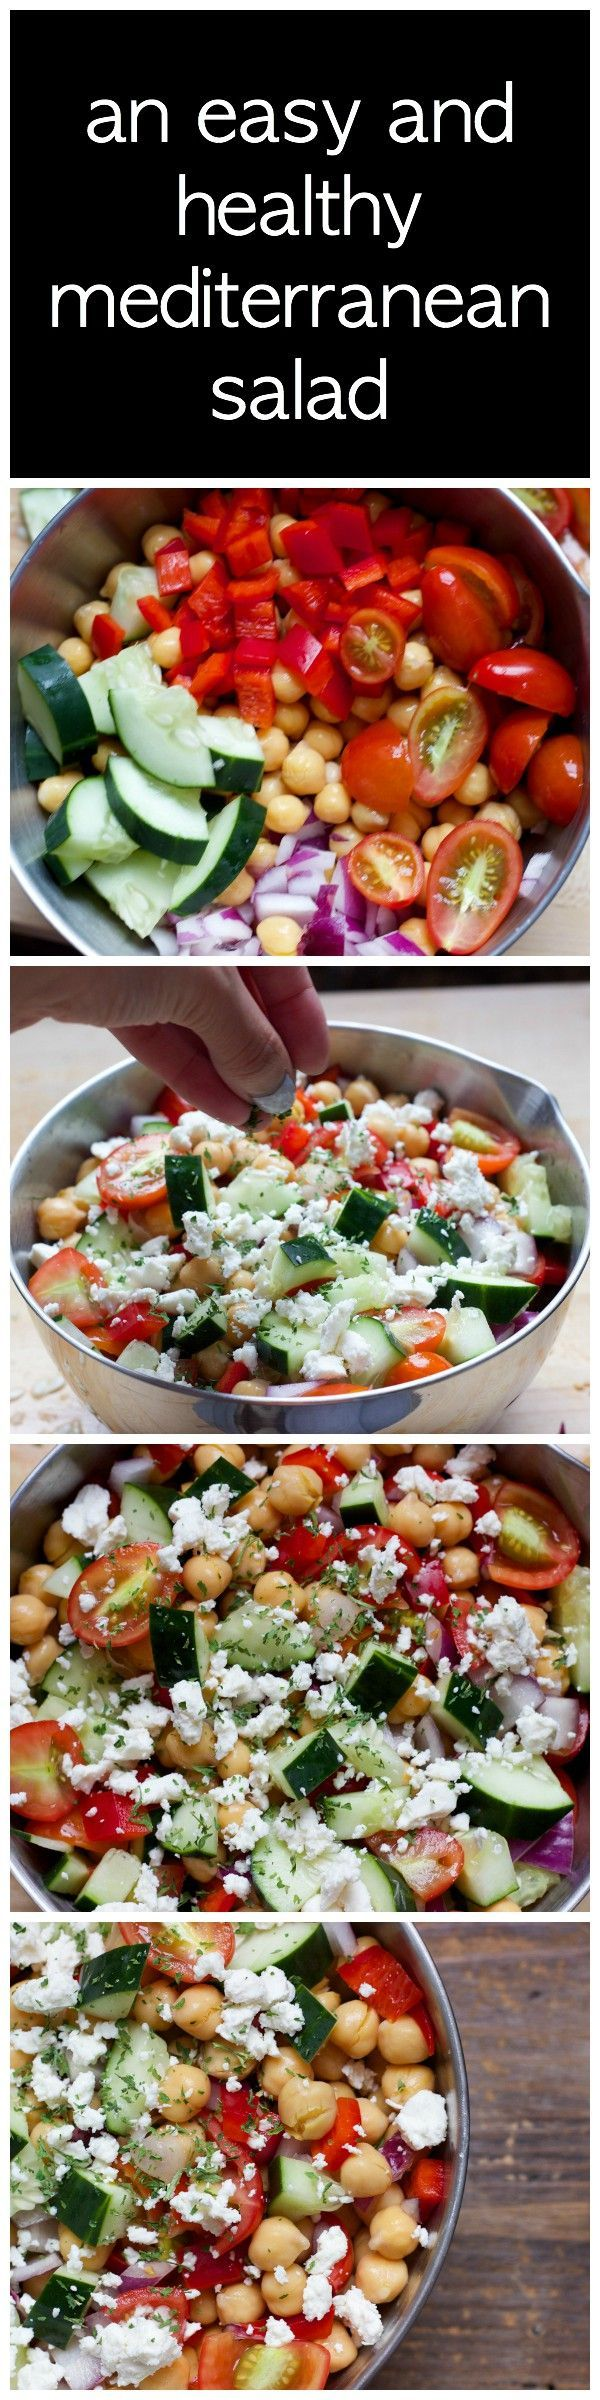 Throw a recipe for a tasty salad with potatoes